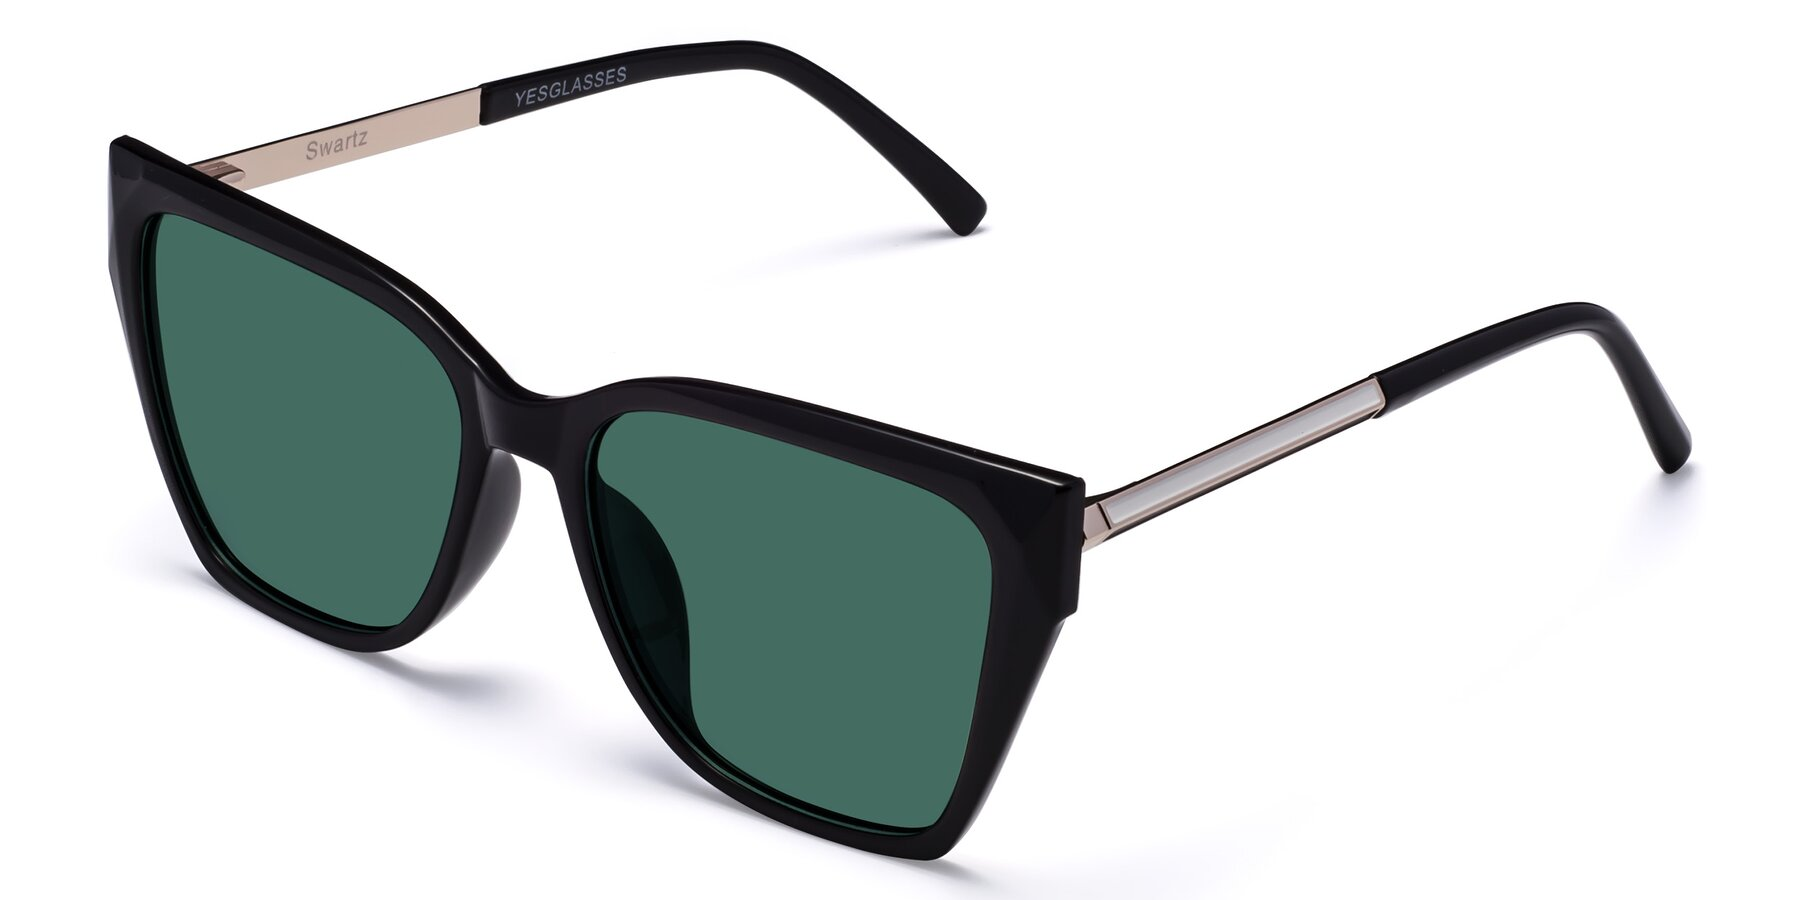 Angle of Swartz in Black with Green Polarized Lenses